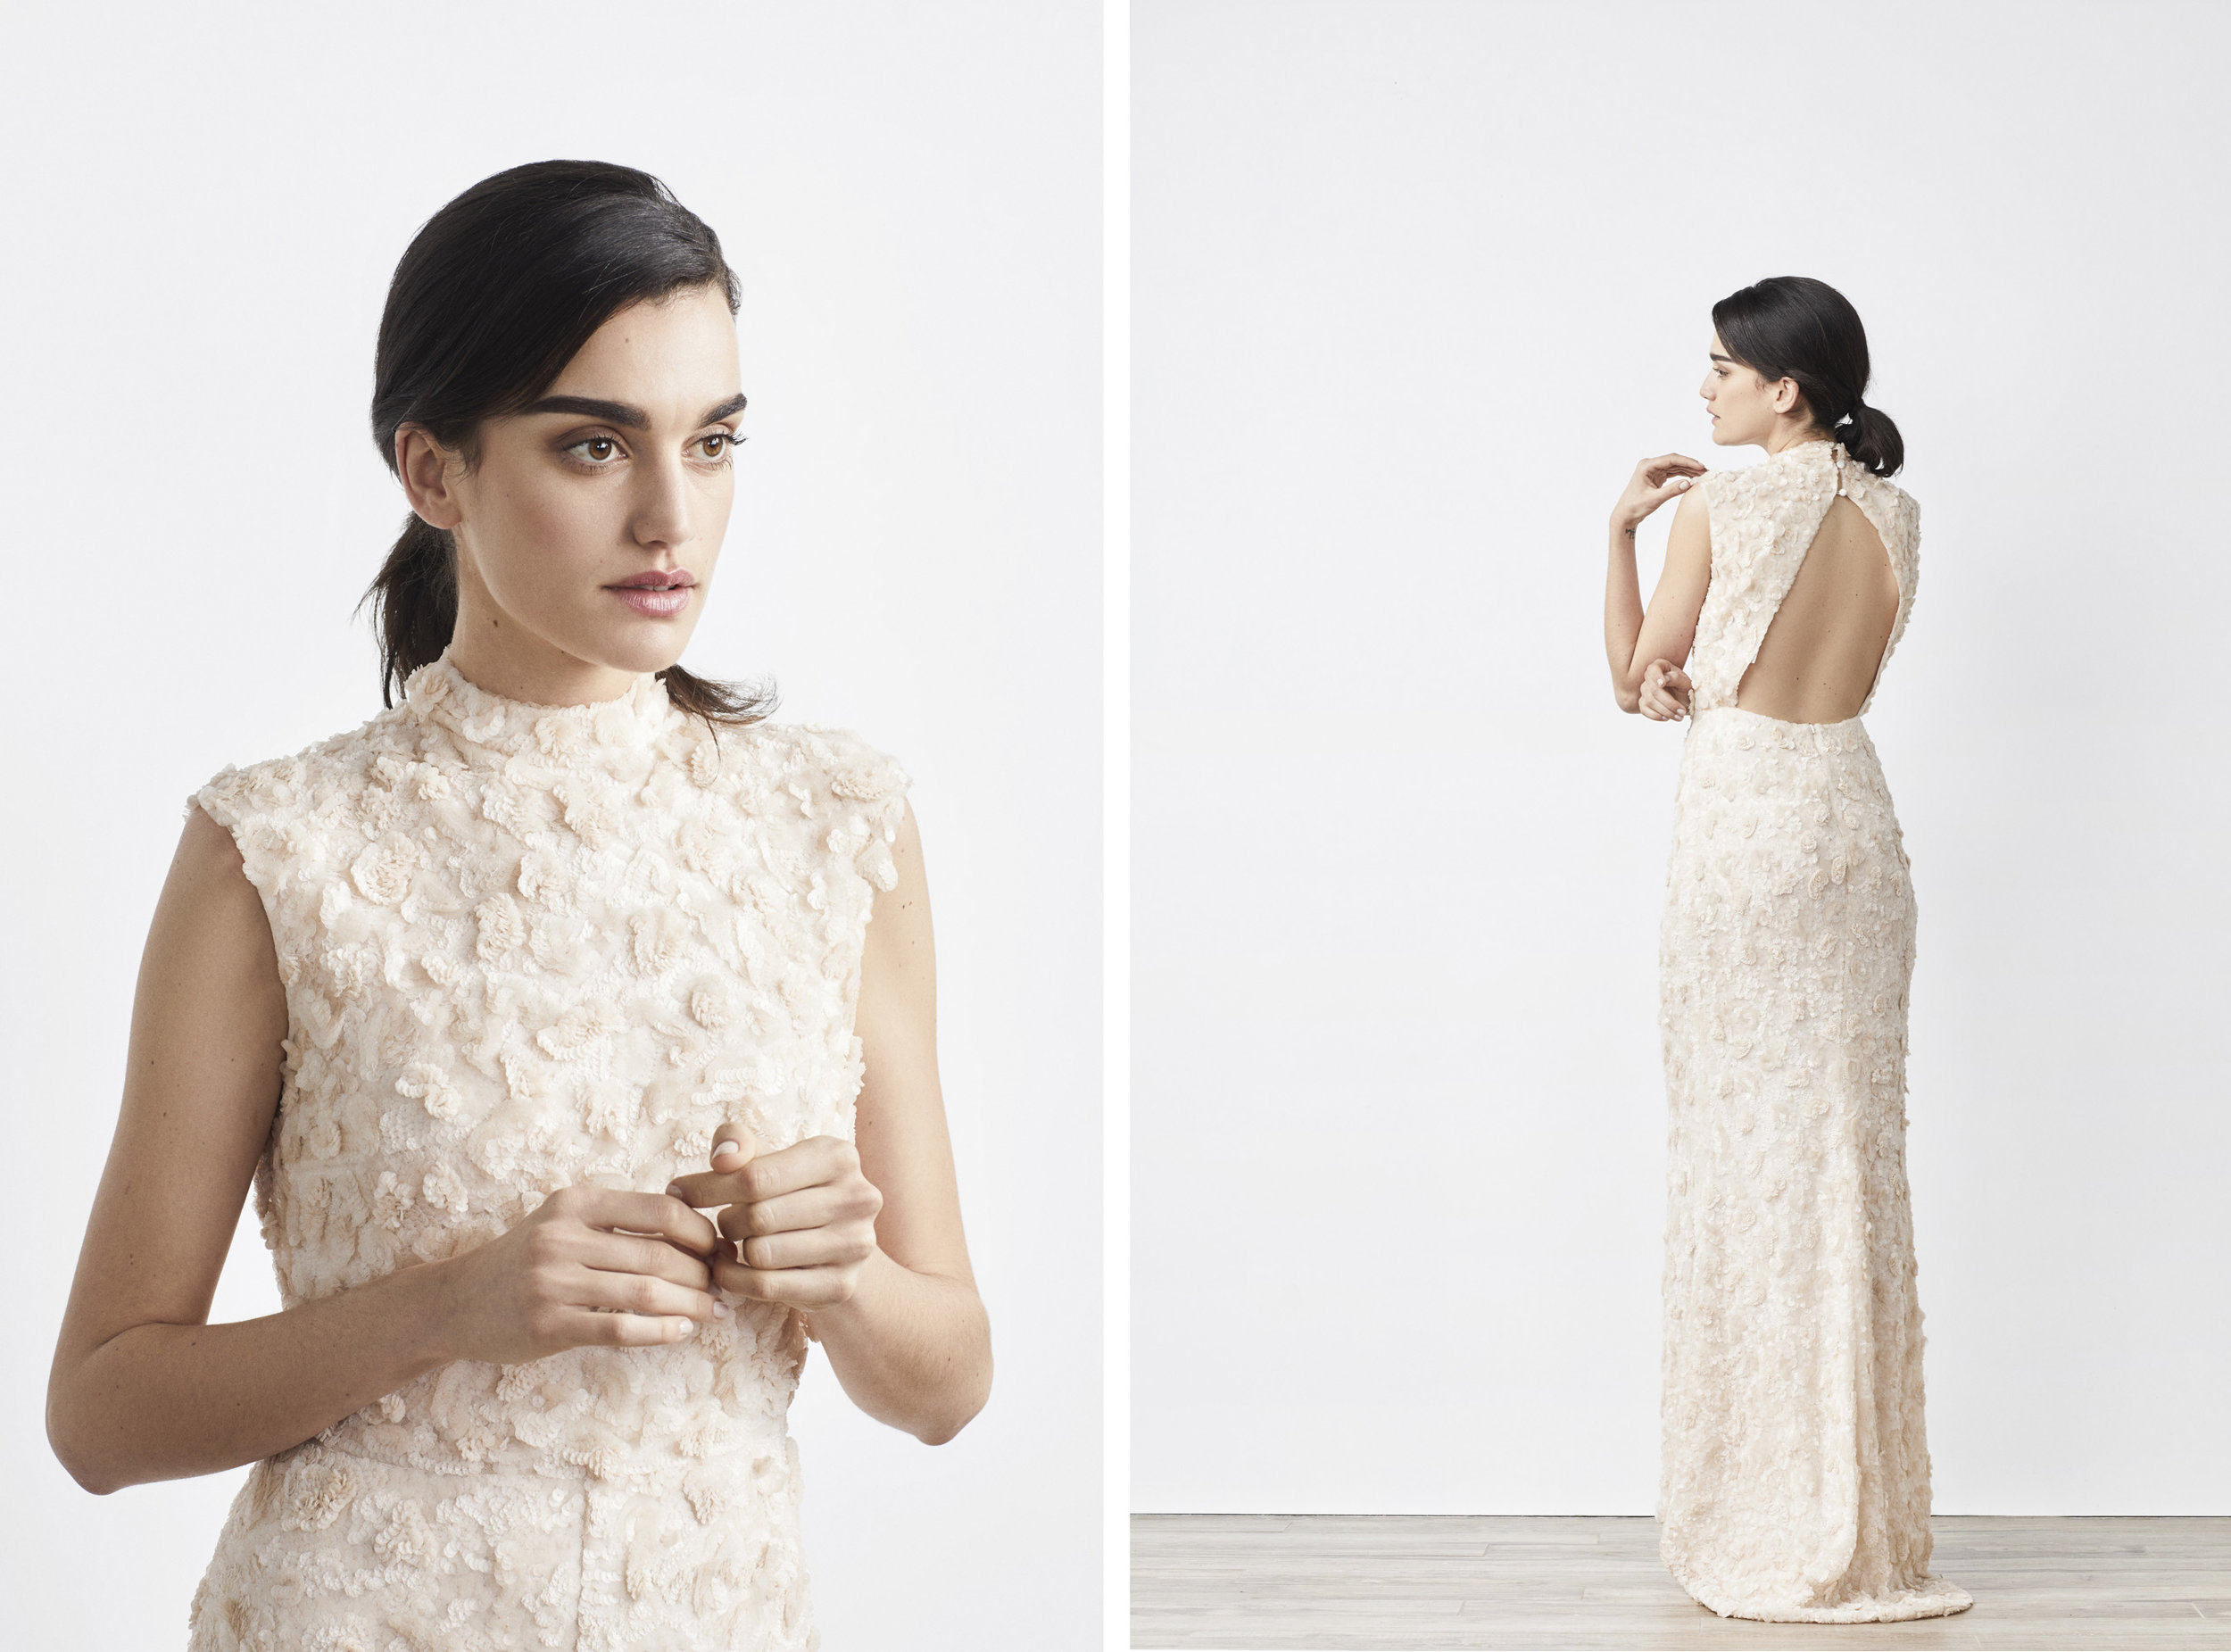 Lela-Blossom-Wedding-Dress-Double-2.jpg